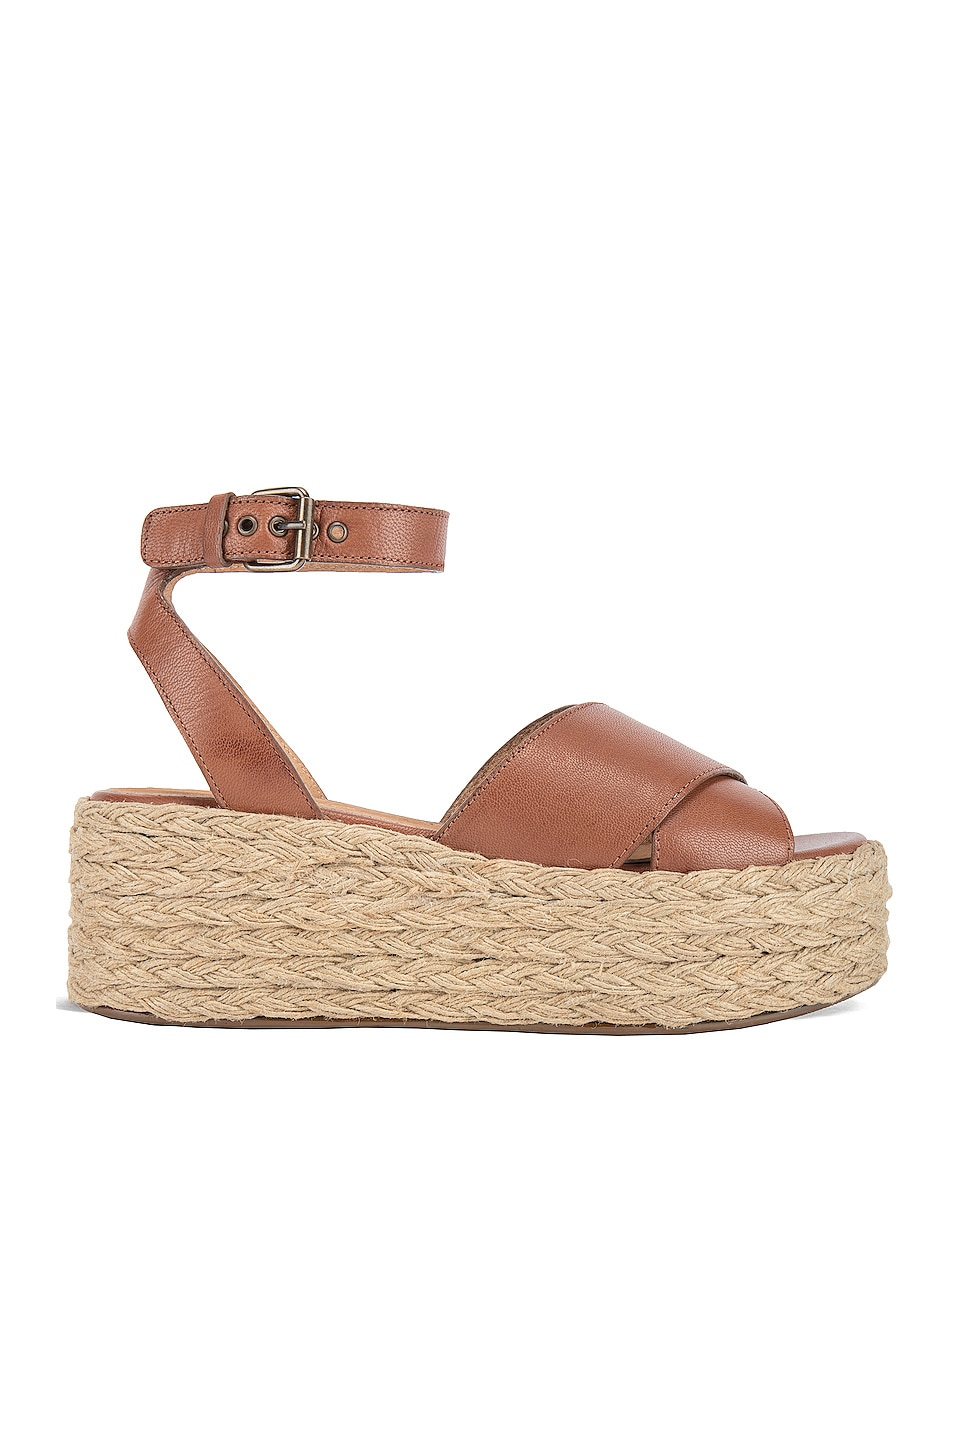 Seychelles Much Publicized Sandal in Tan